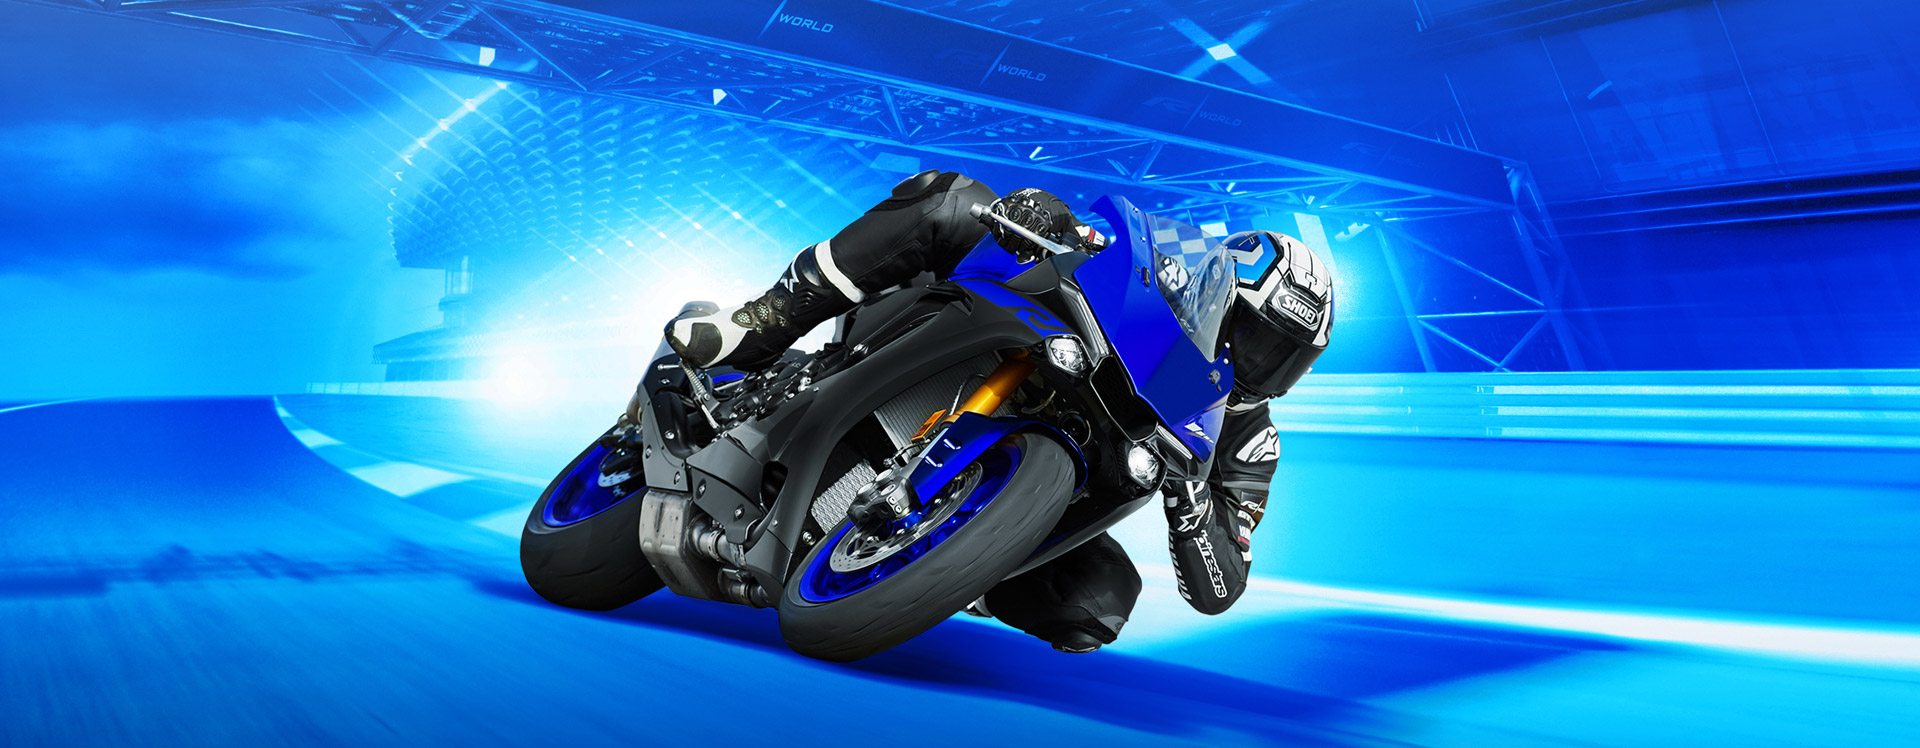 2019 Yamaha Yzf R1 Supersport Motorcycle Model Home